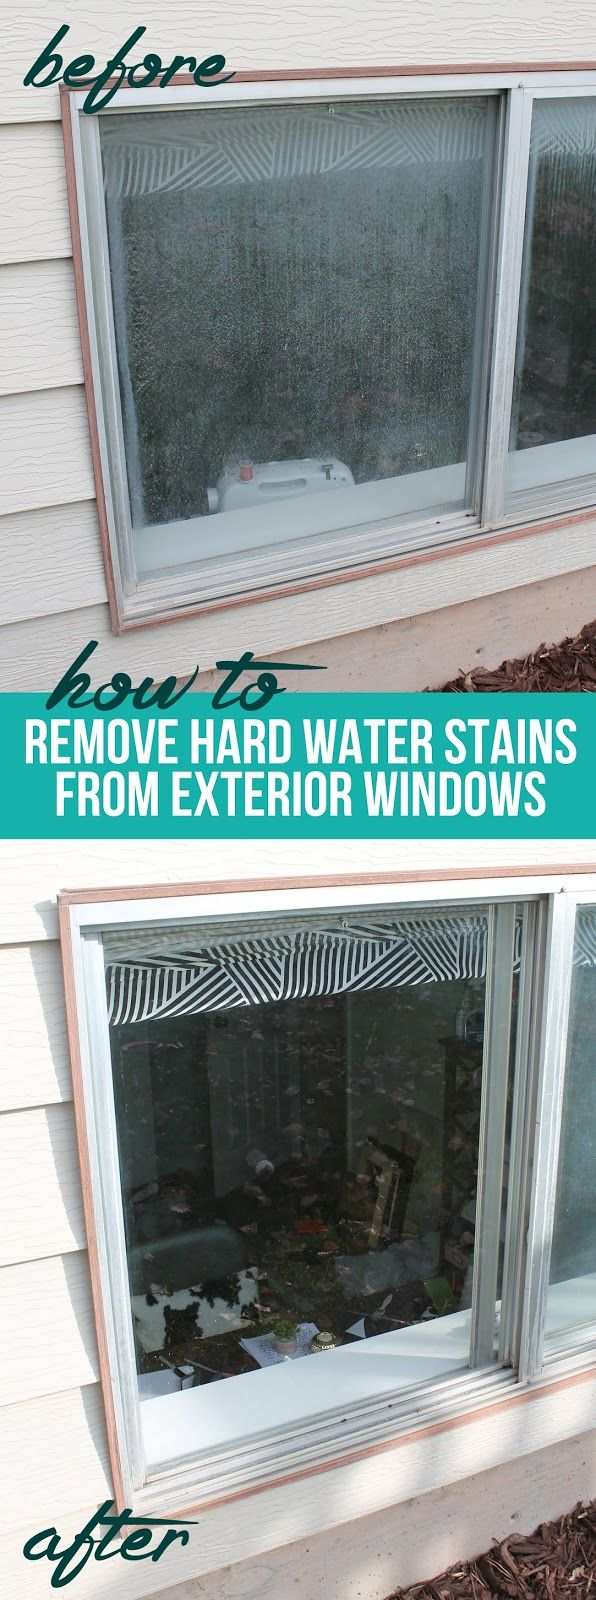 best 10 window cleaning solutions ideas on pinterest window cleaning supplies window. Black Bedroom Furniture Sets. Home Design Ideas